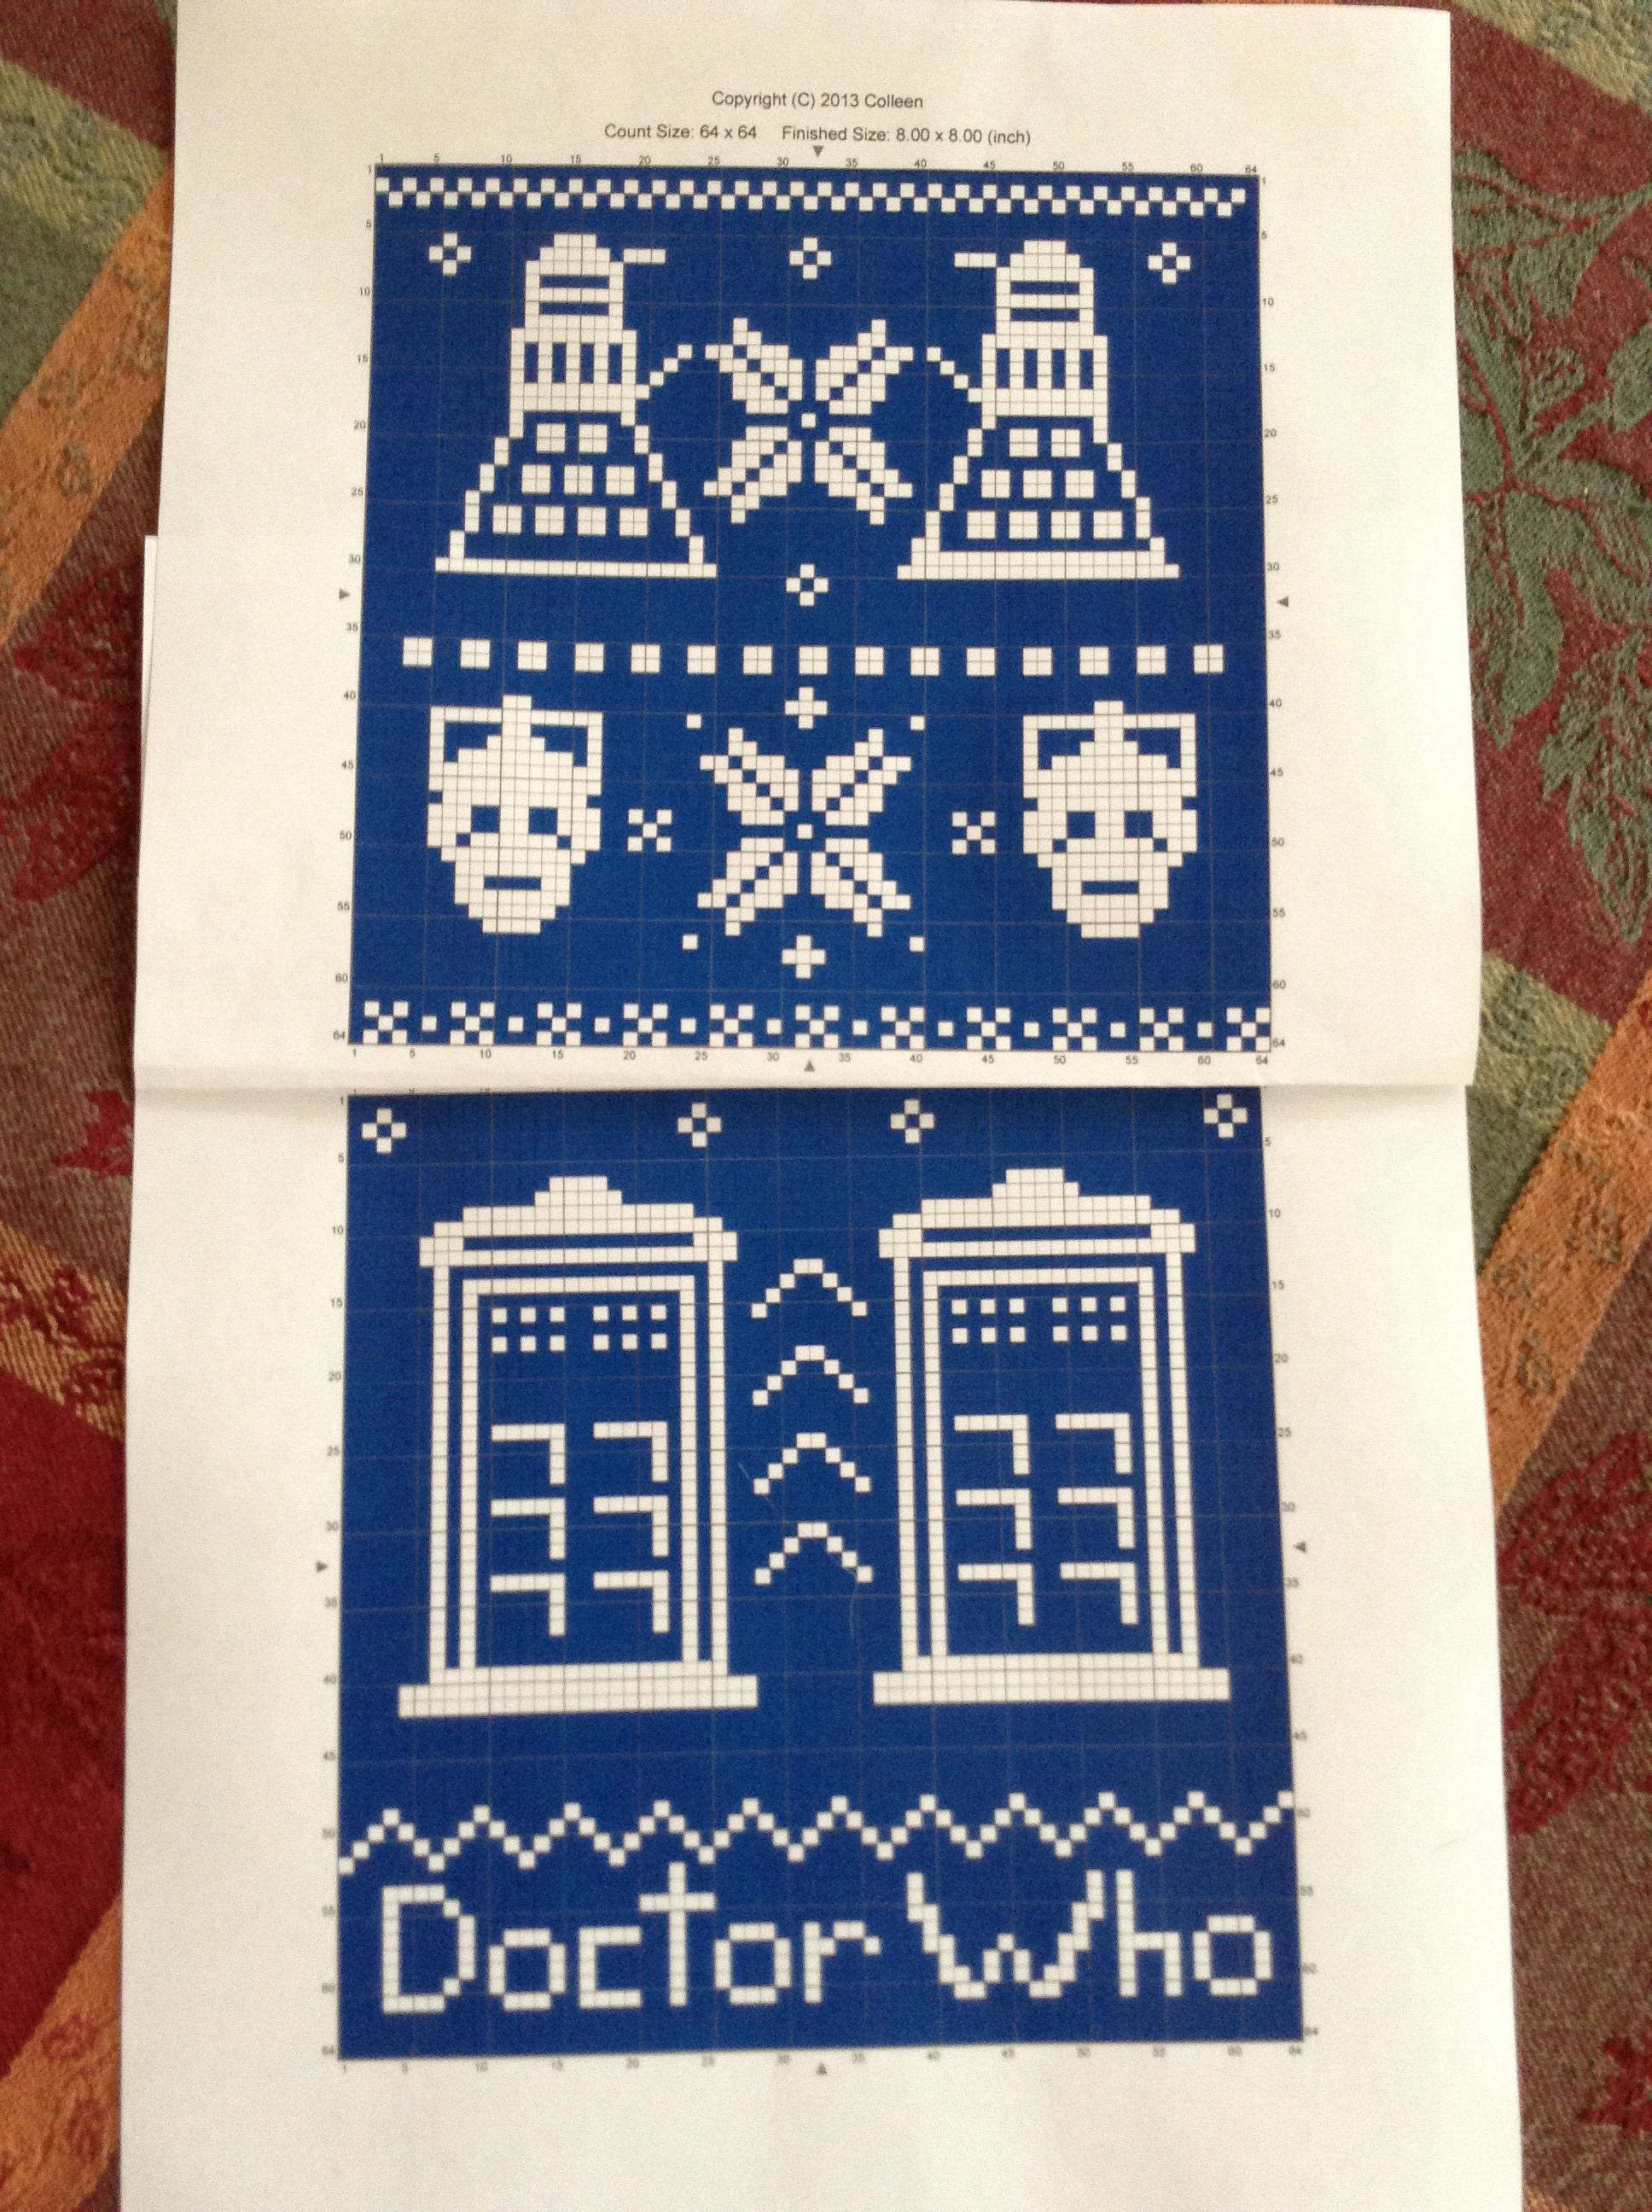 Dr Who fair isle knit pattern! Made with free app StitchSketchLE ...